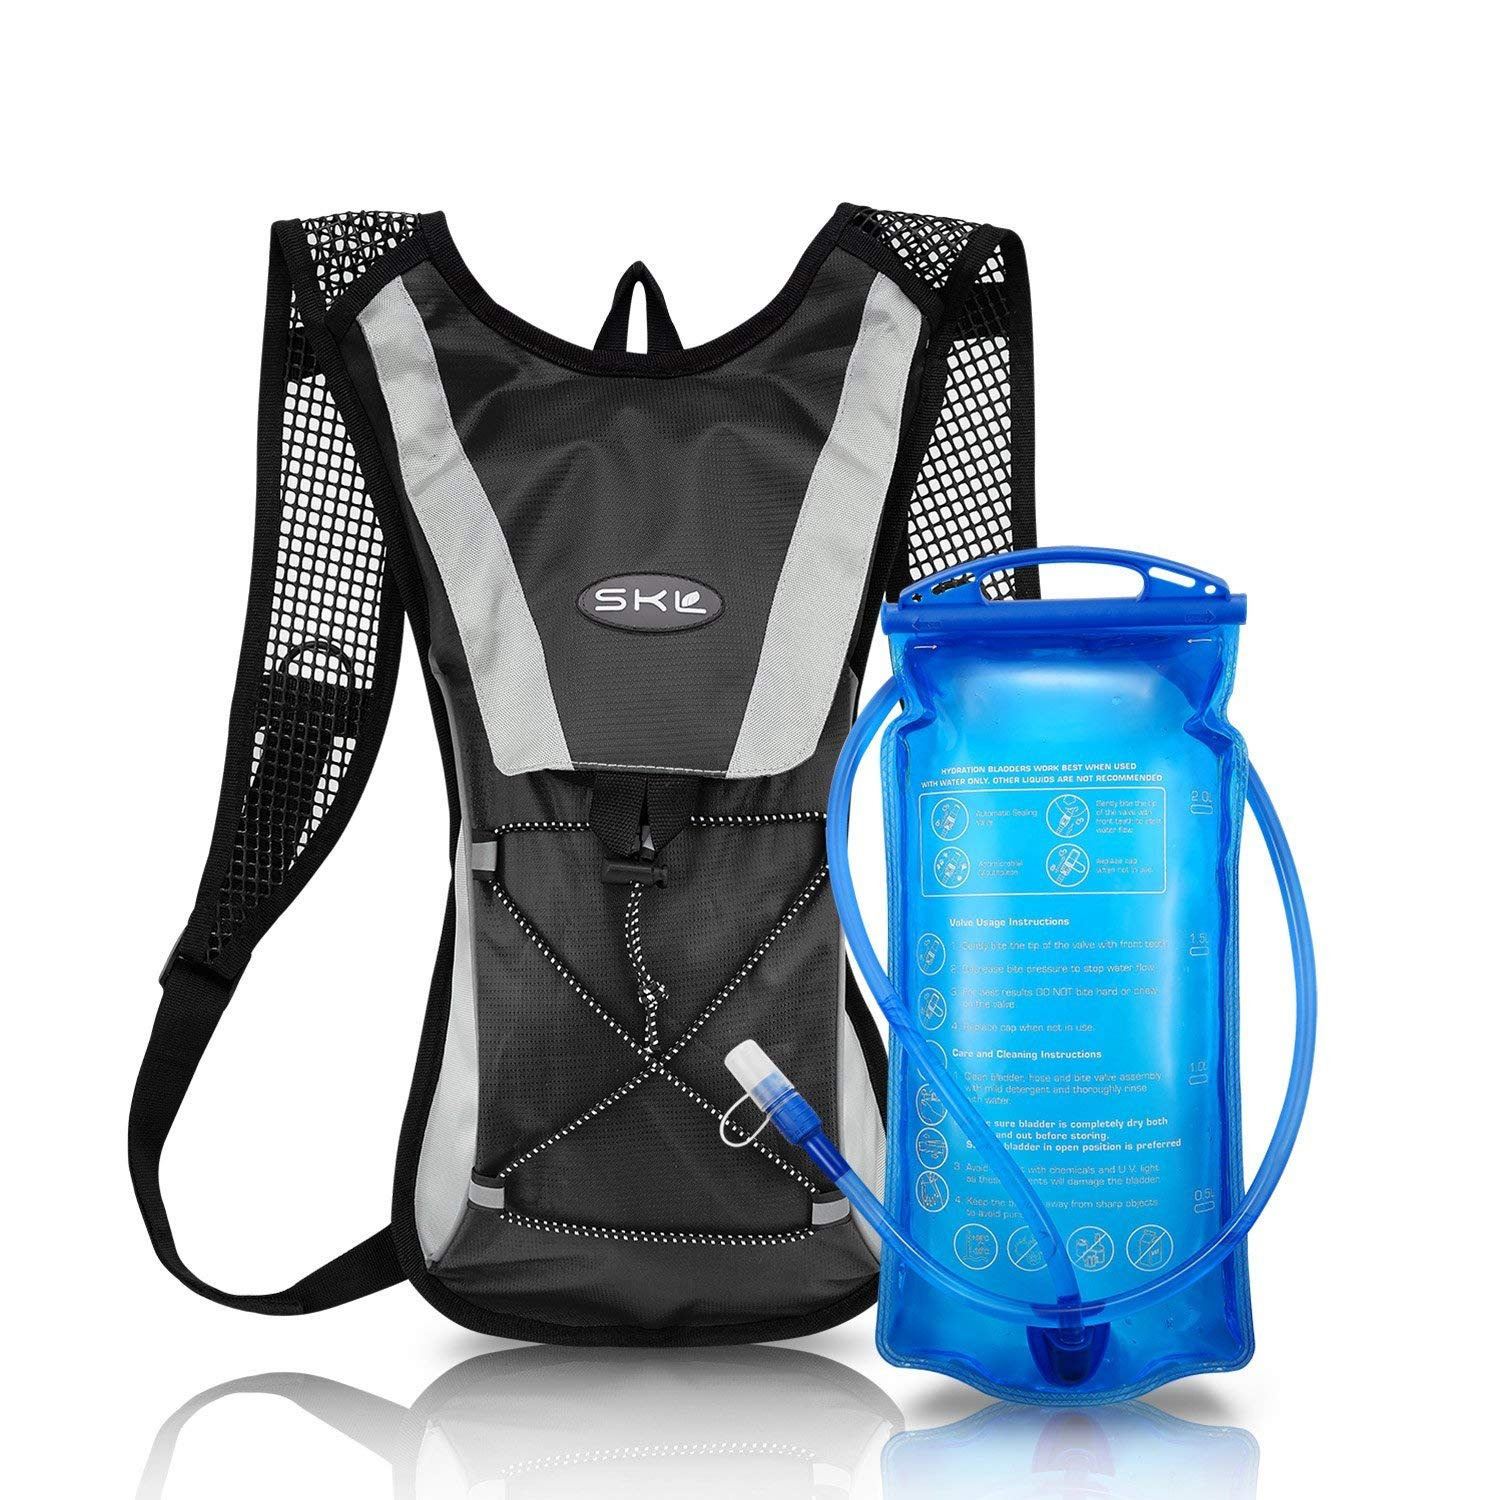 6feeb1cd6cef Small Running Backpack Amazon- Fenix Toulouse Handball